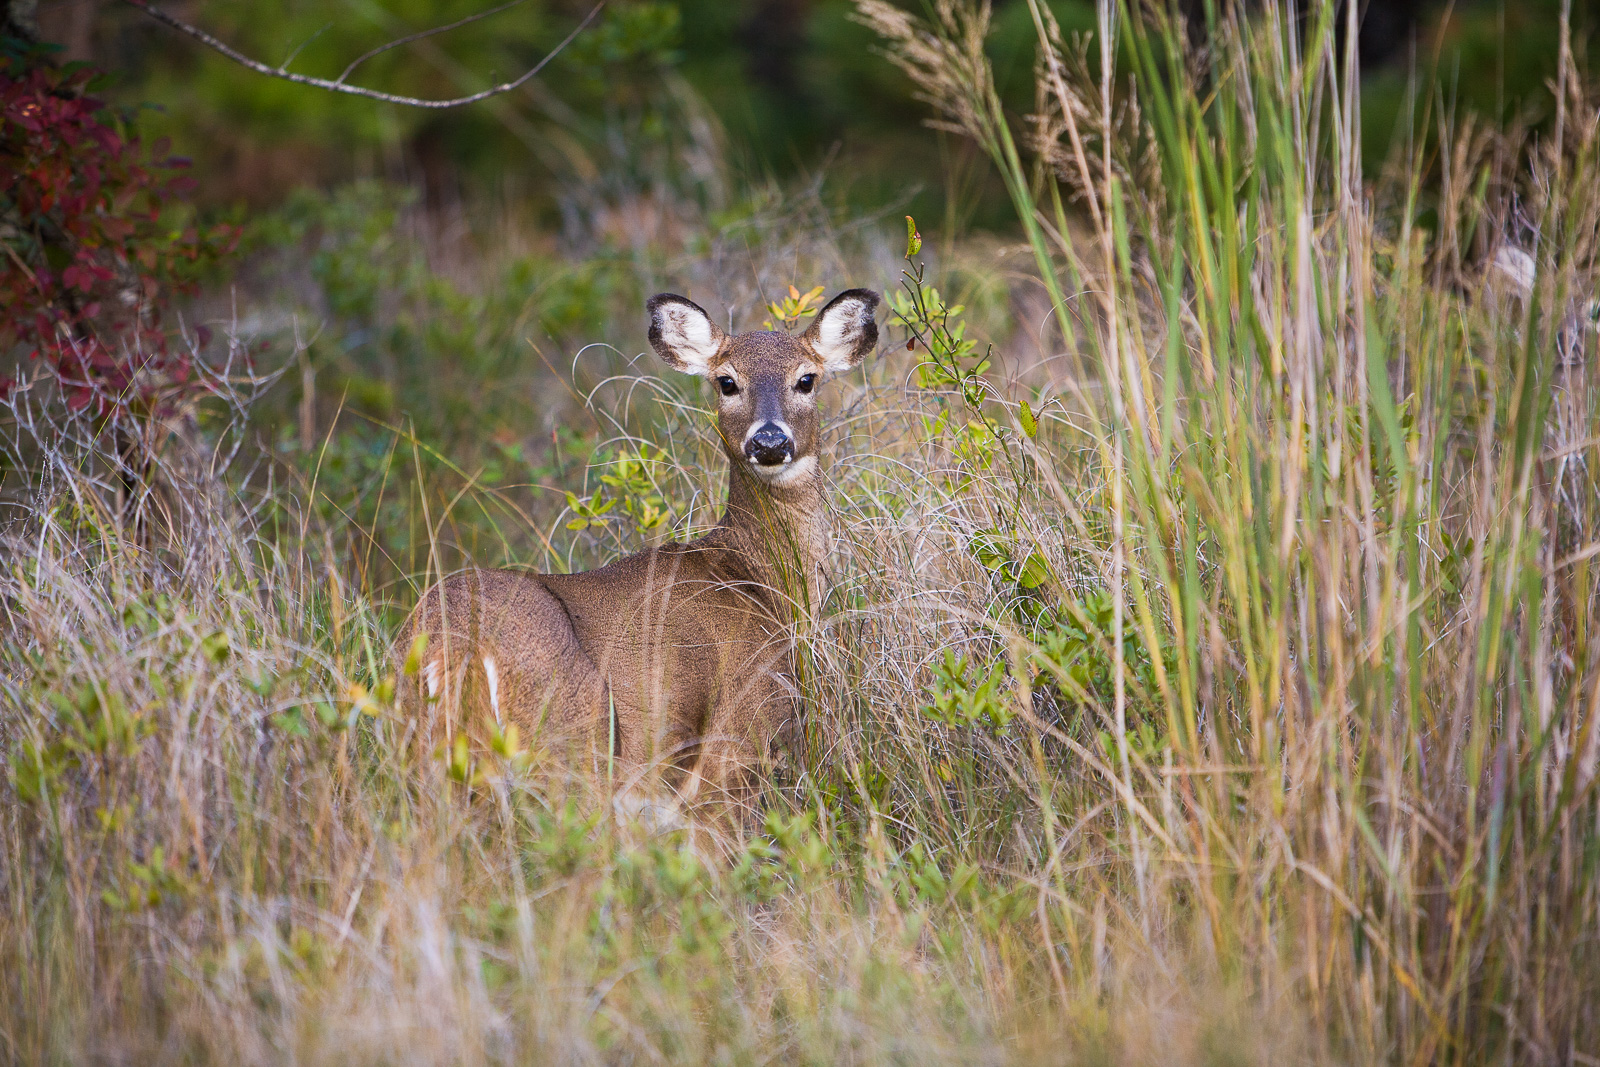 Grasslands,Maryland,Grasslands,Assateague Island, bushes,wild, sika, deer, , photo